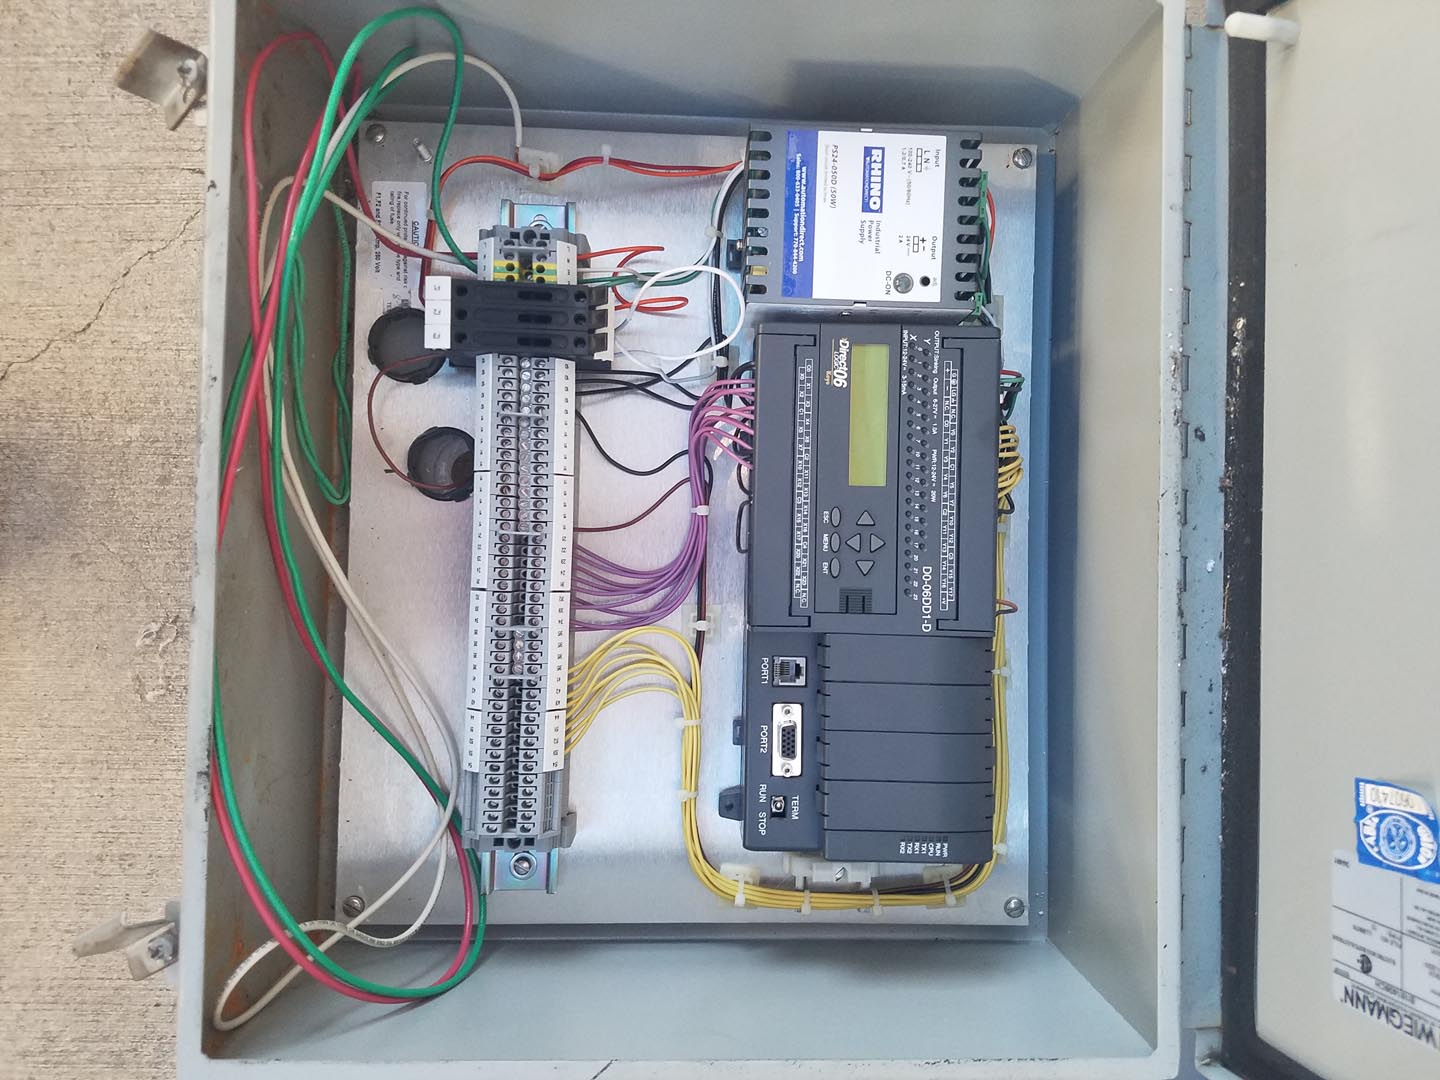 CDCW - Belanger - Centra 64 - Tunnel Controllers, Carwash ...